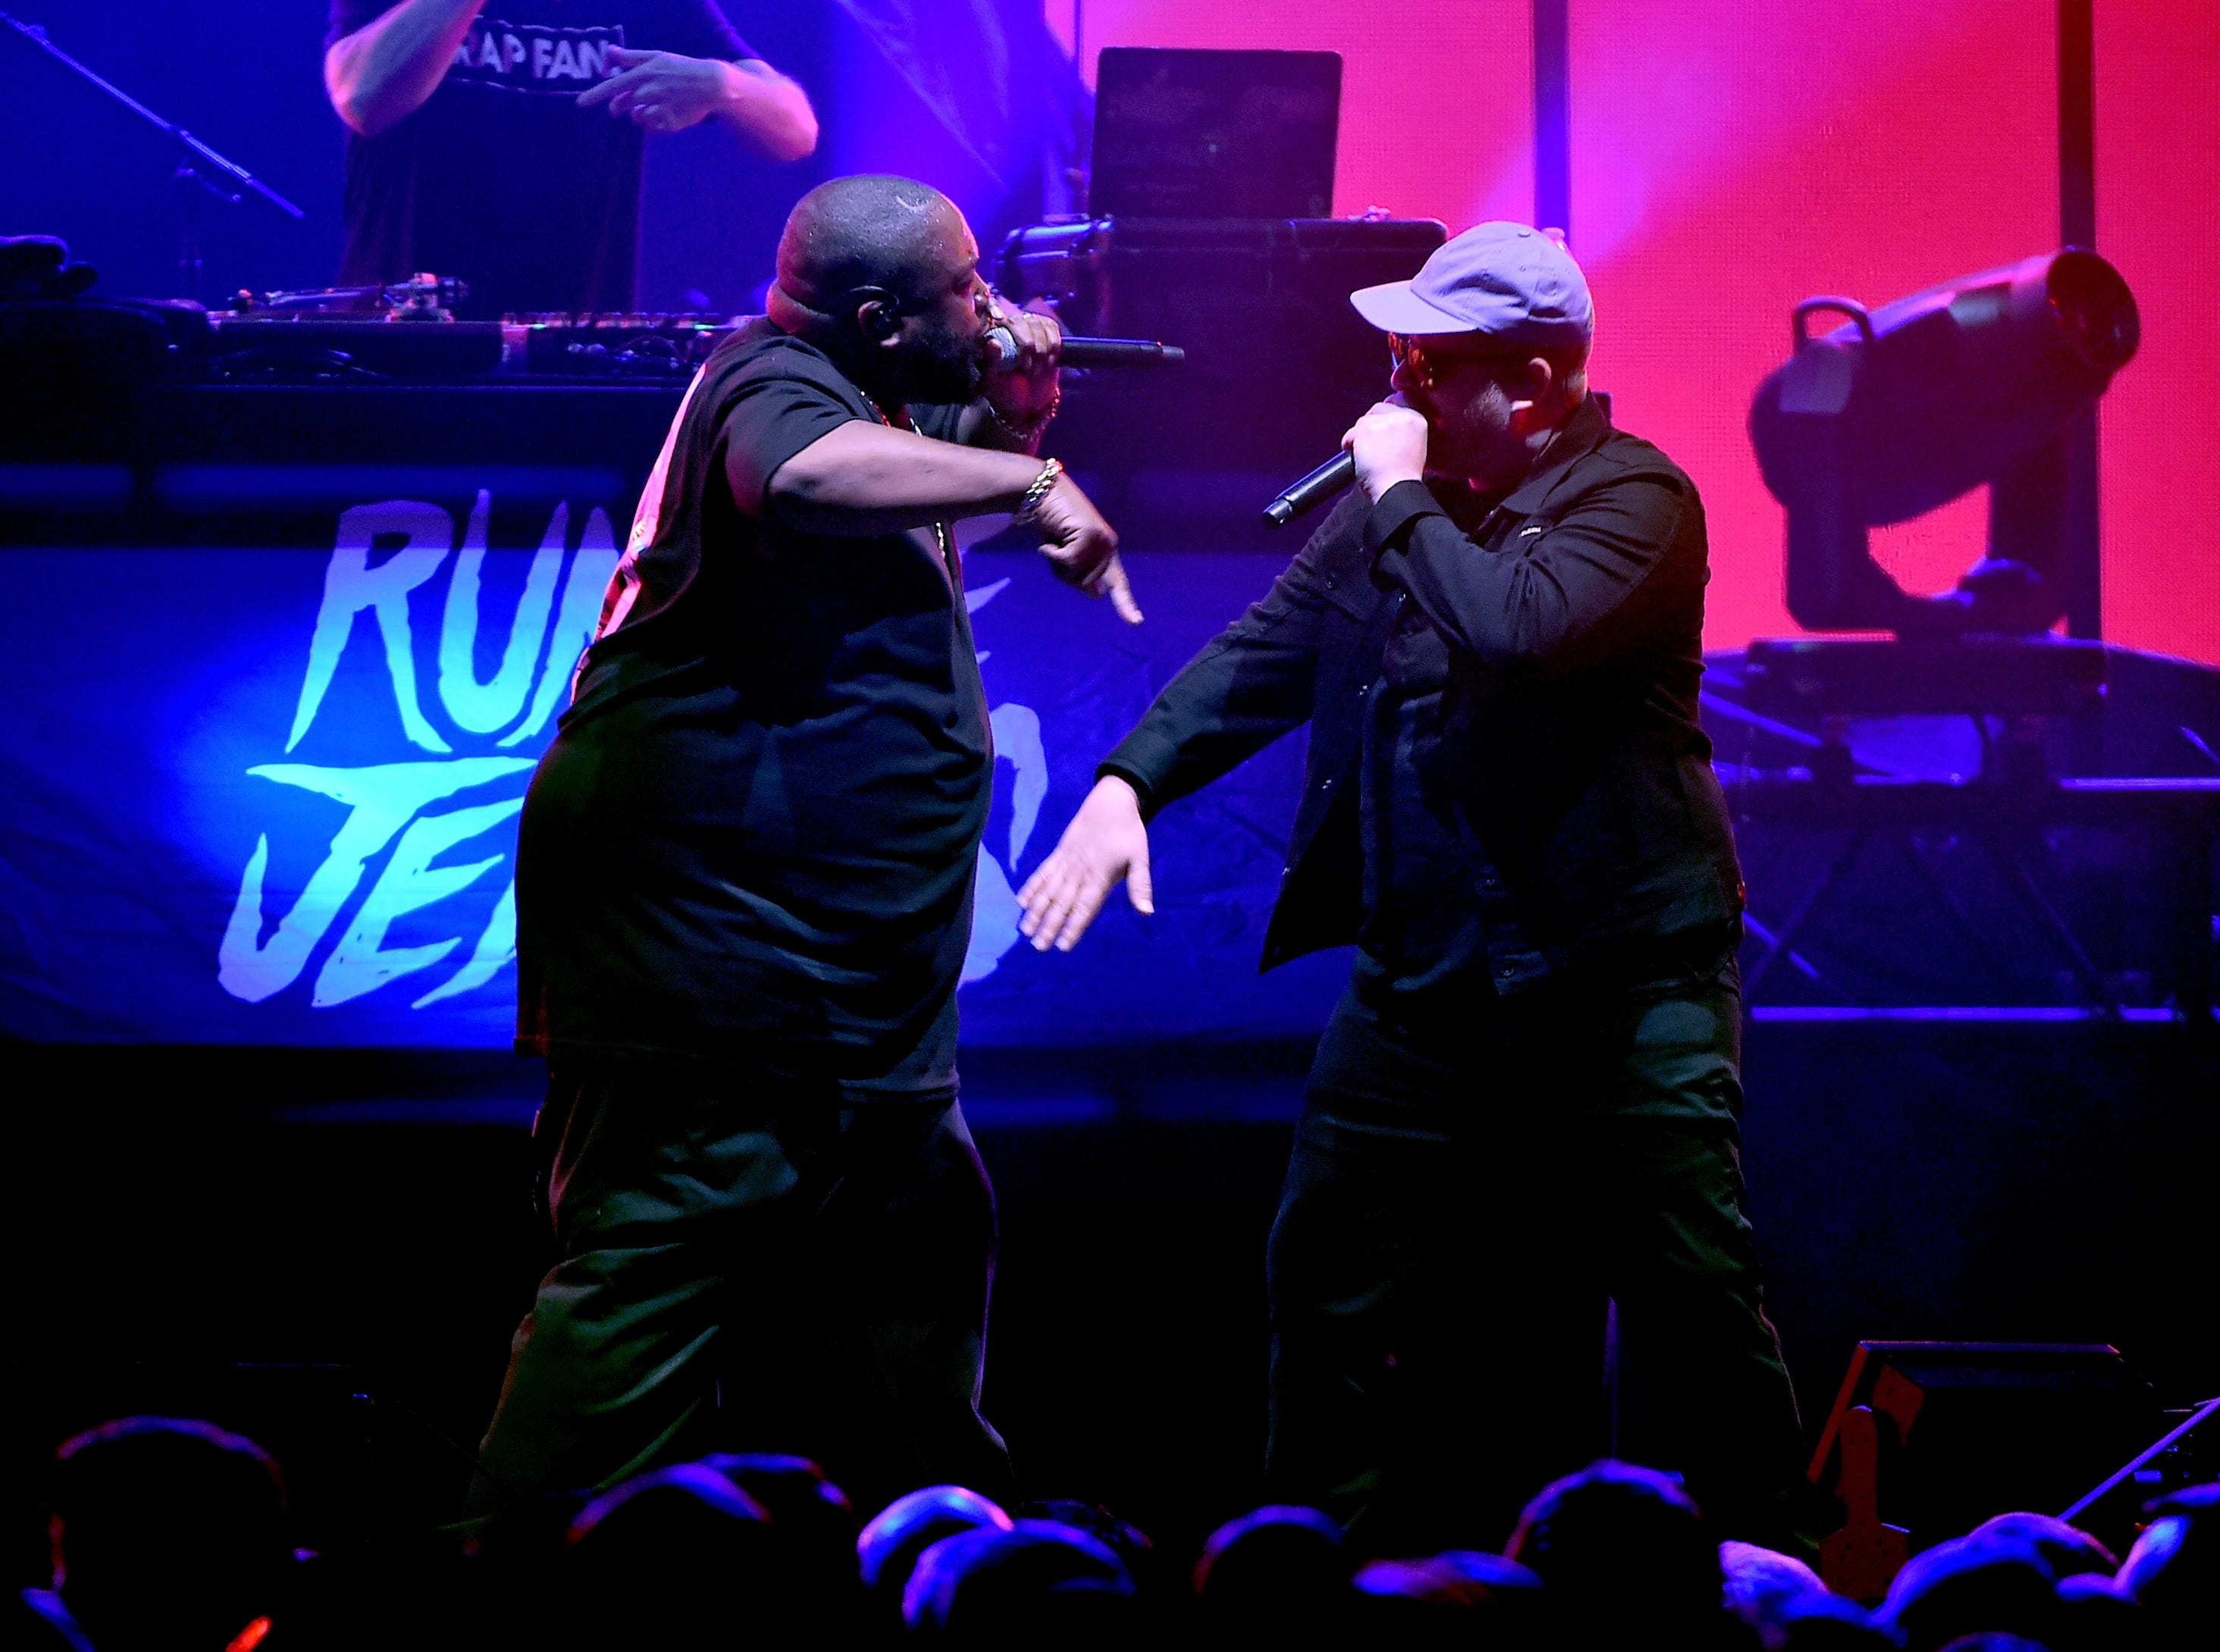 ATLANTA, GA - FEBRUARY 02:  Killer Mike and El-P of Run the Jewels perform onstage at DIRECTV Super Saturday Night 2019 at Atlantic Station on February 2, 2019 in Atlanta, Georgia.  (Photo by Theo Wargo/Getty Images for DIRECTV) ORG XMIT: 775270904 ORIG FILE ID: 1093235266